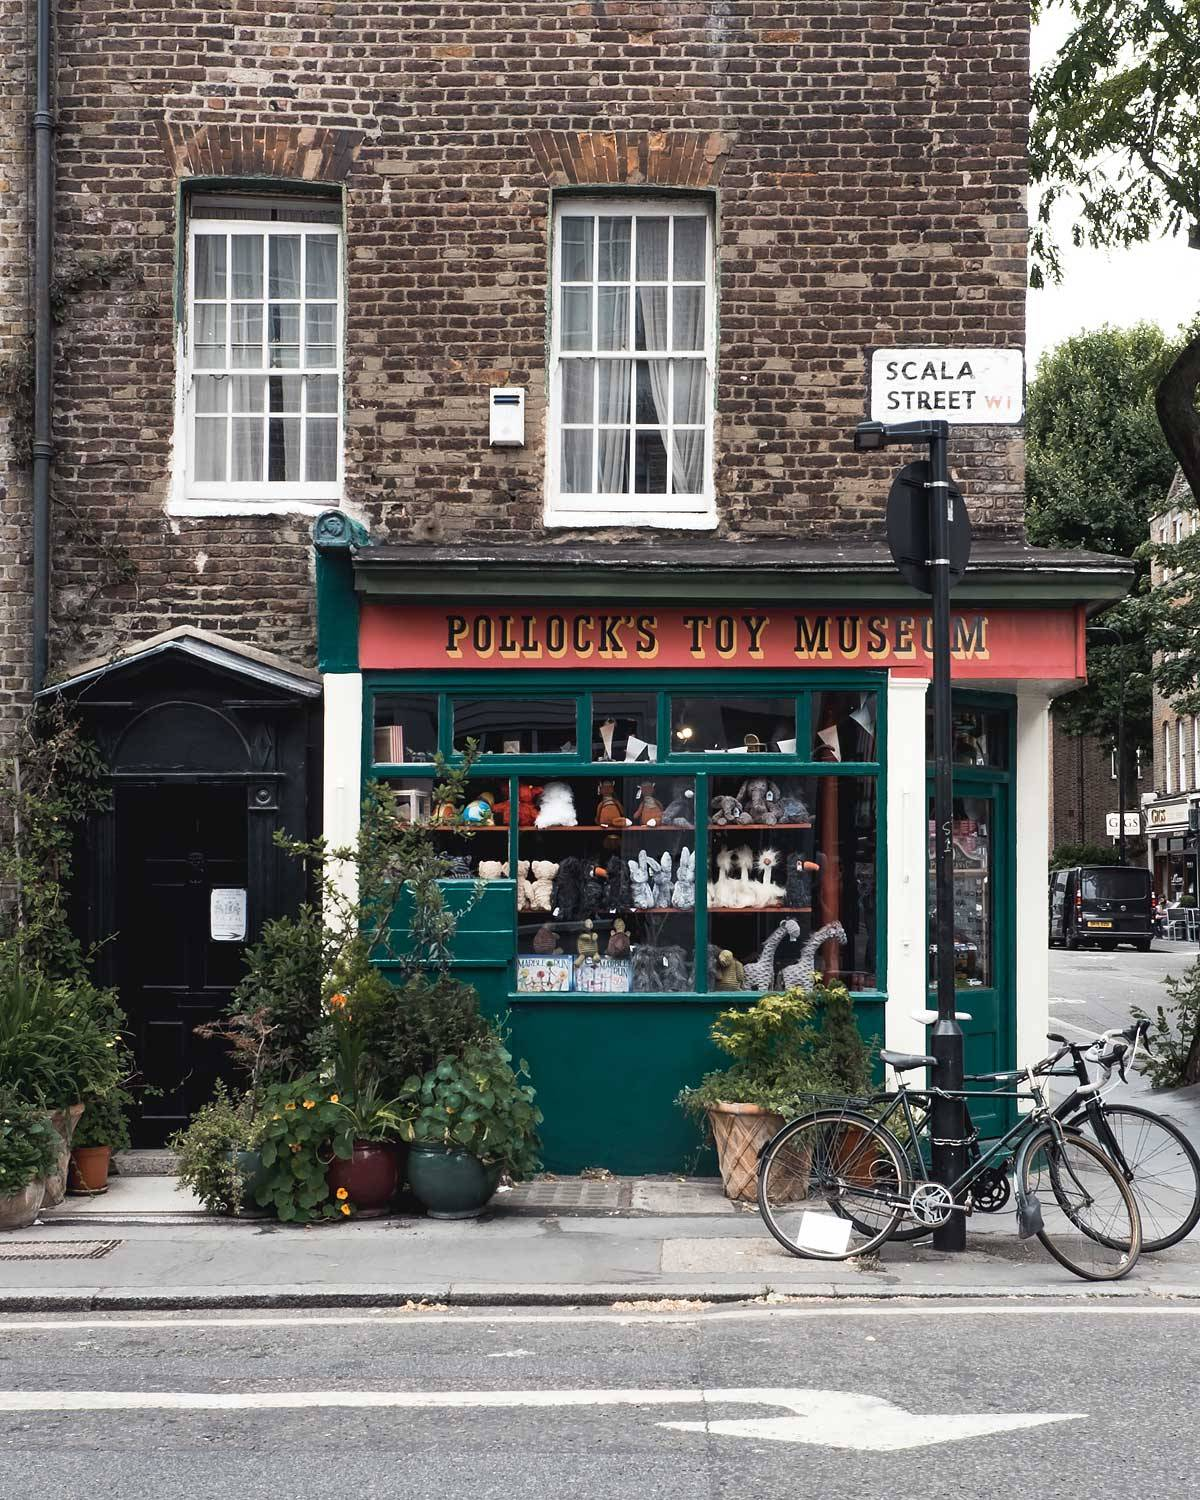 16 photogenic locations to discover in Fitzrovia, London